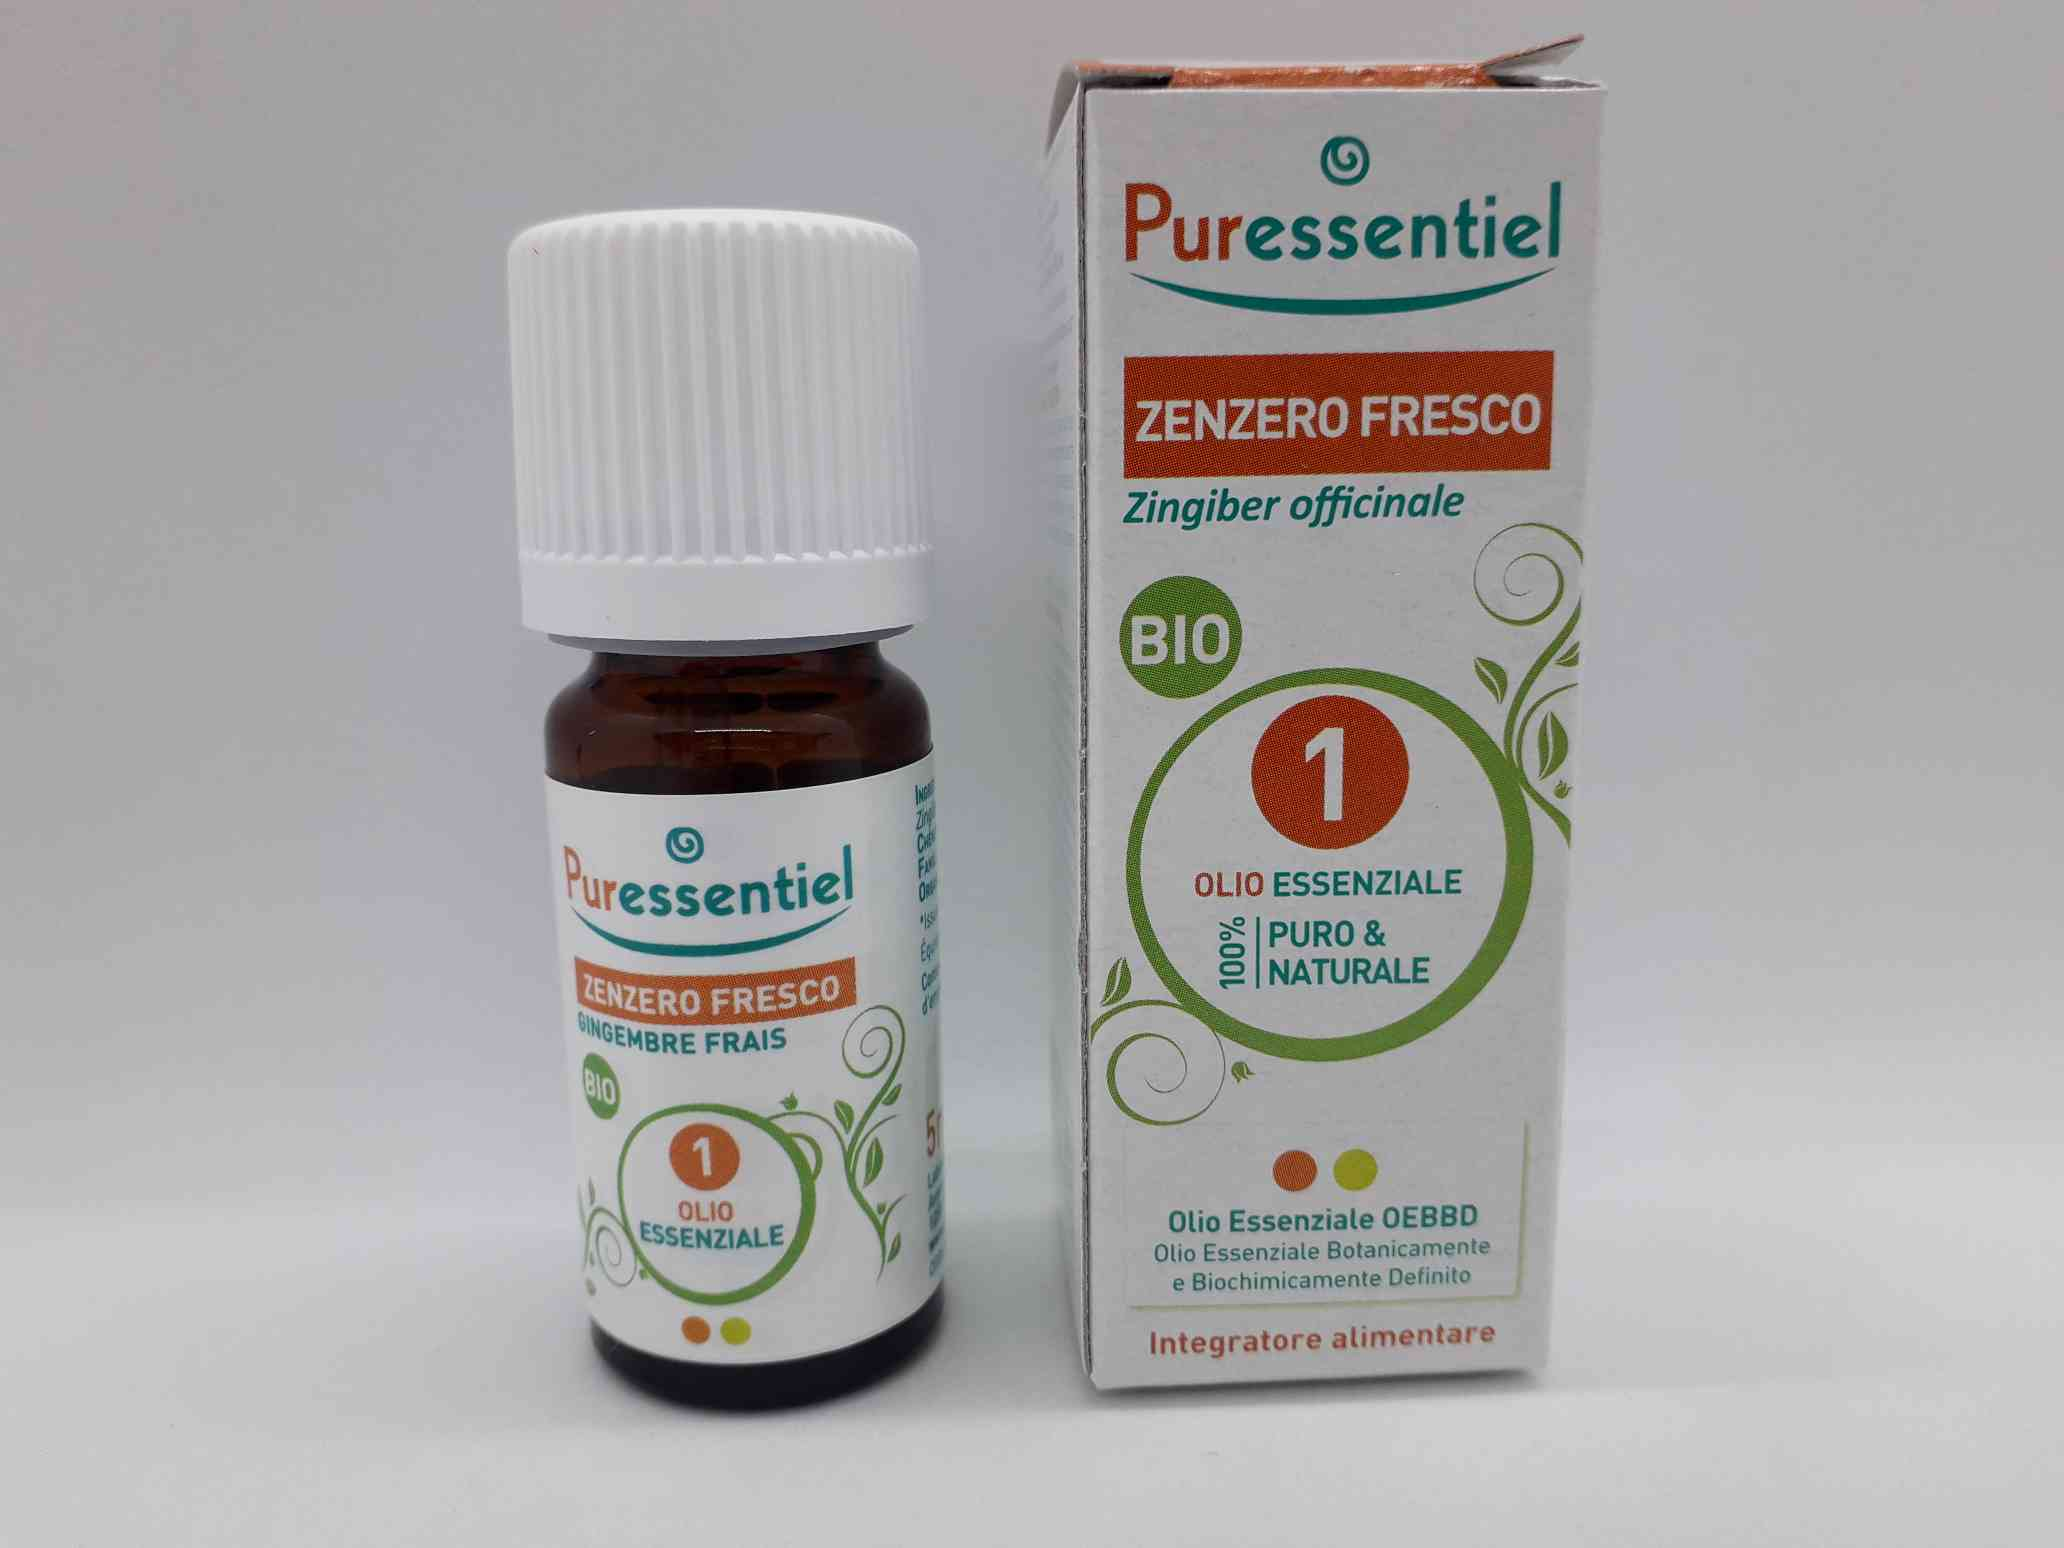 PURESSENTIEL OLIO ESSENZIALE ZENZERO FRESCO BIO 5 ML - Farmaciaempatica.it